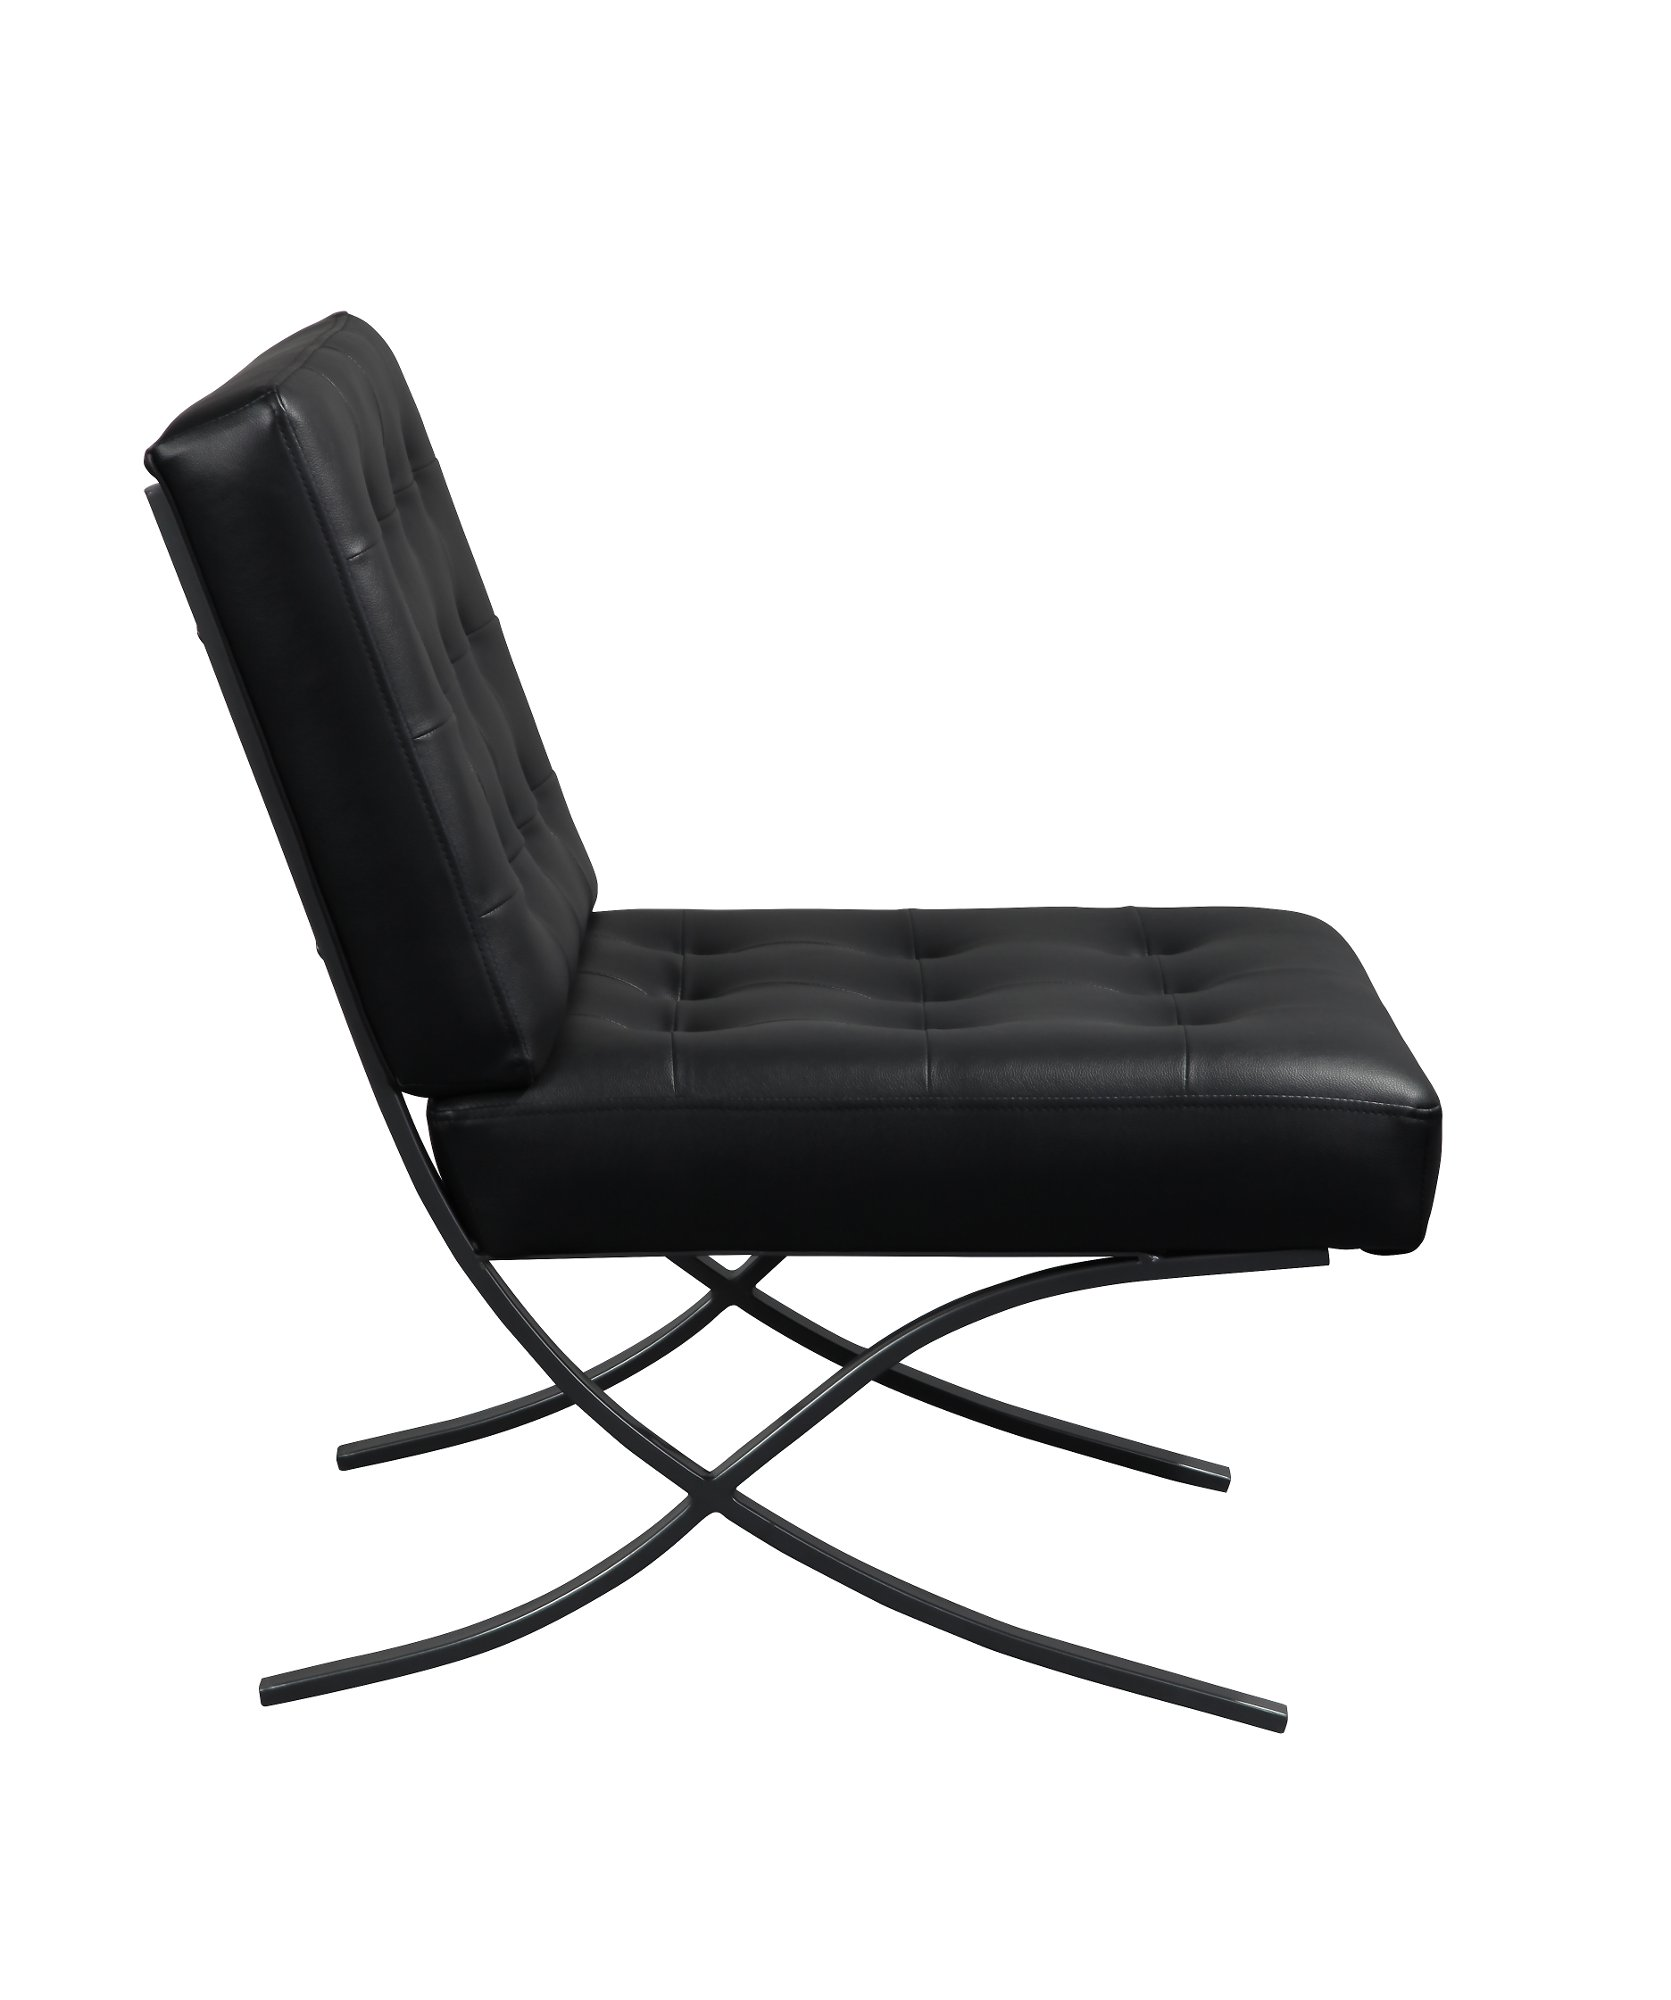 Black Relax A Lounger Chair And Ottoman Set Princeton Chair Ottoman Set Chair Ottoman Chair